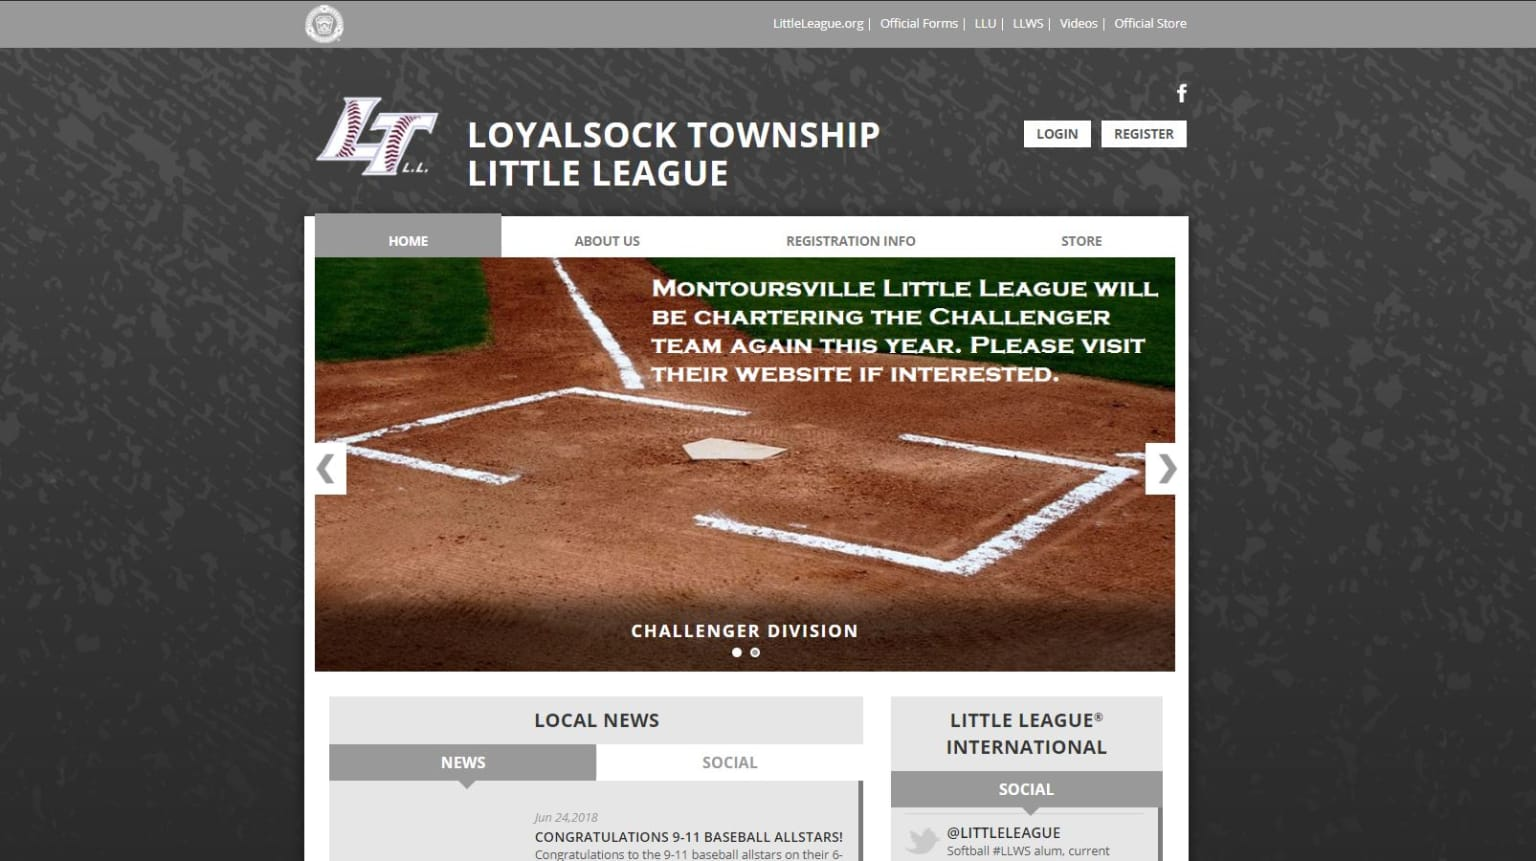 Share Websites The Value And Importance Of Developing League District Websites